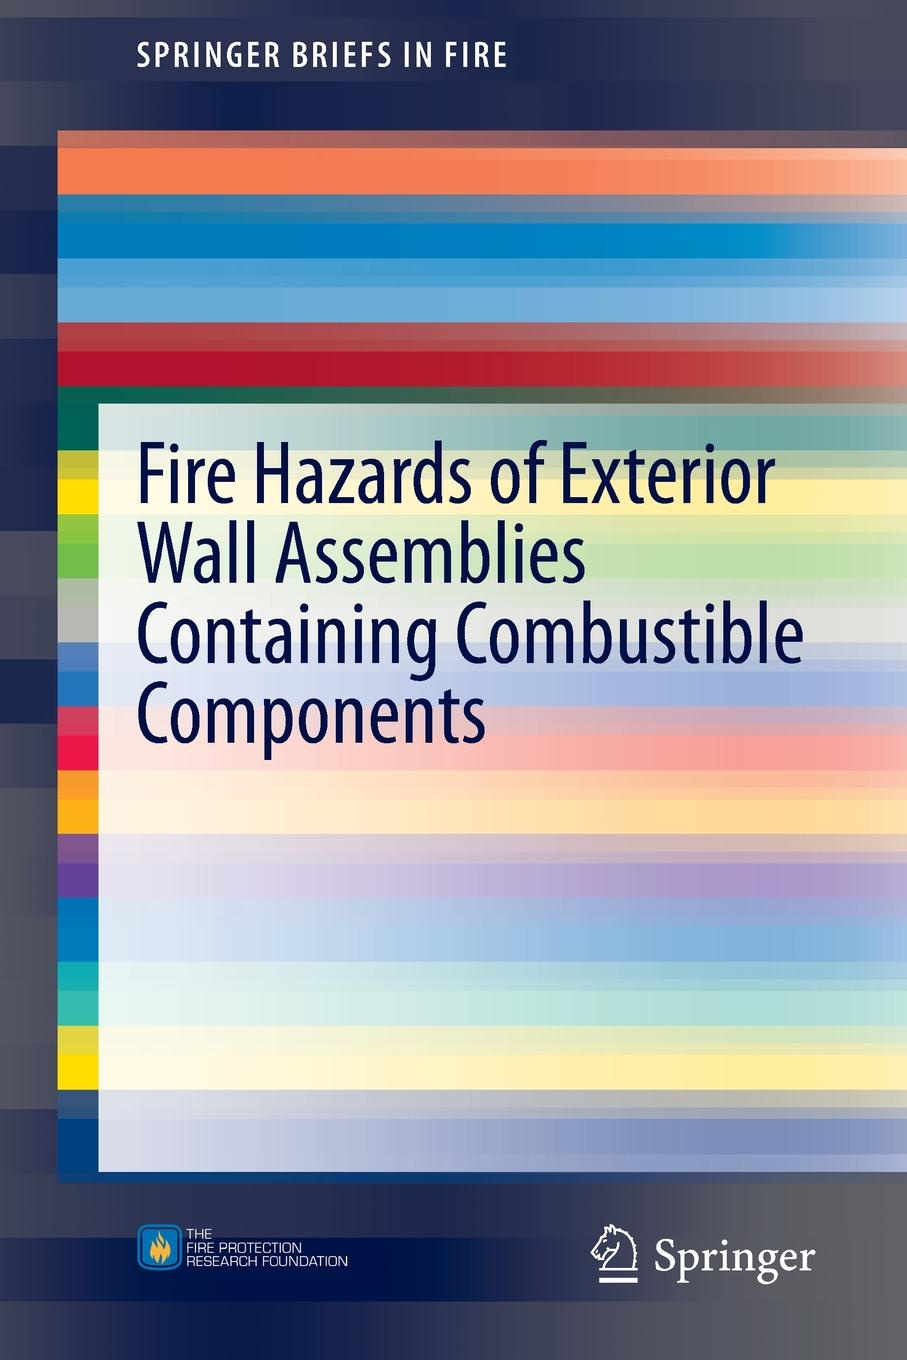 Nathan White, Michael Delichatsios Fire Hazards of Exterior Wall Assemblies Containing Combustible Components